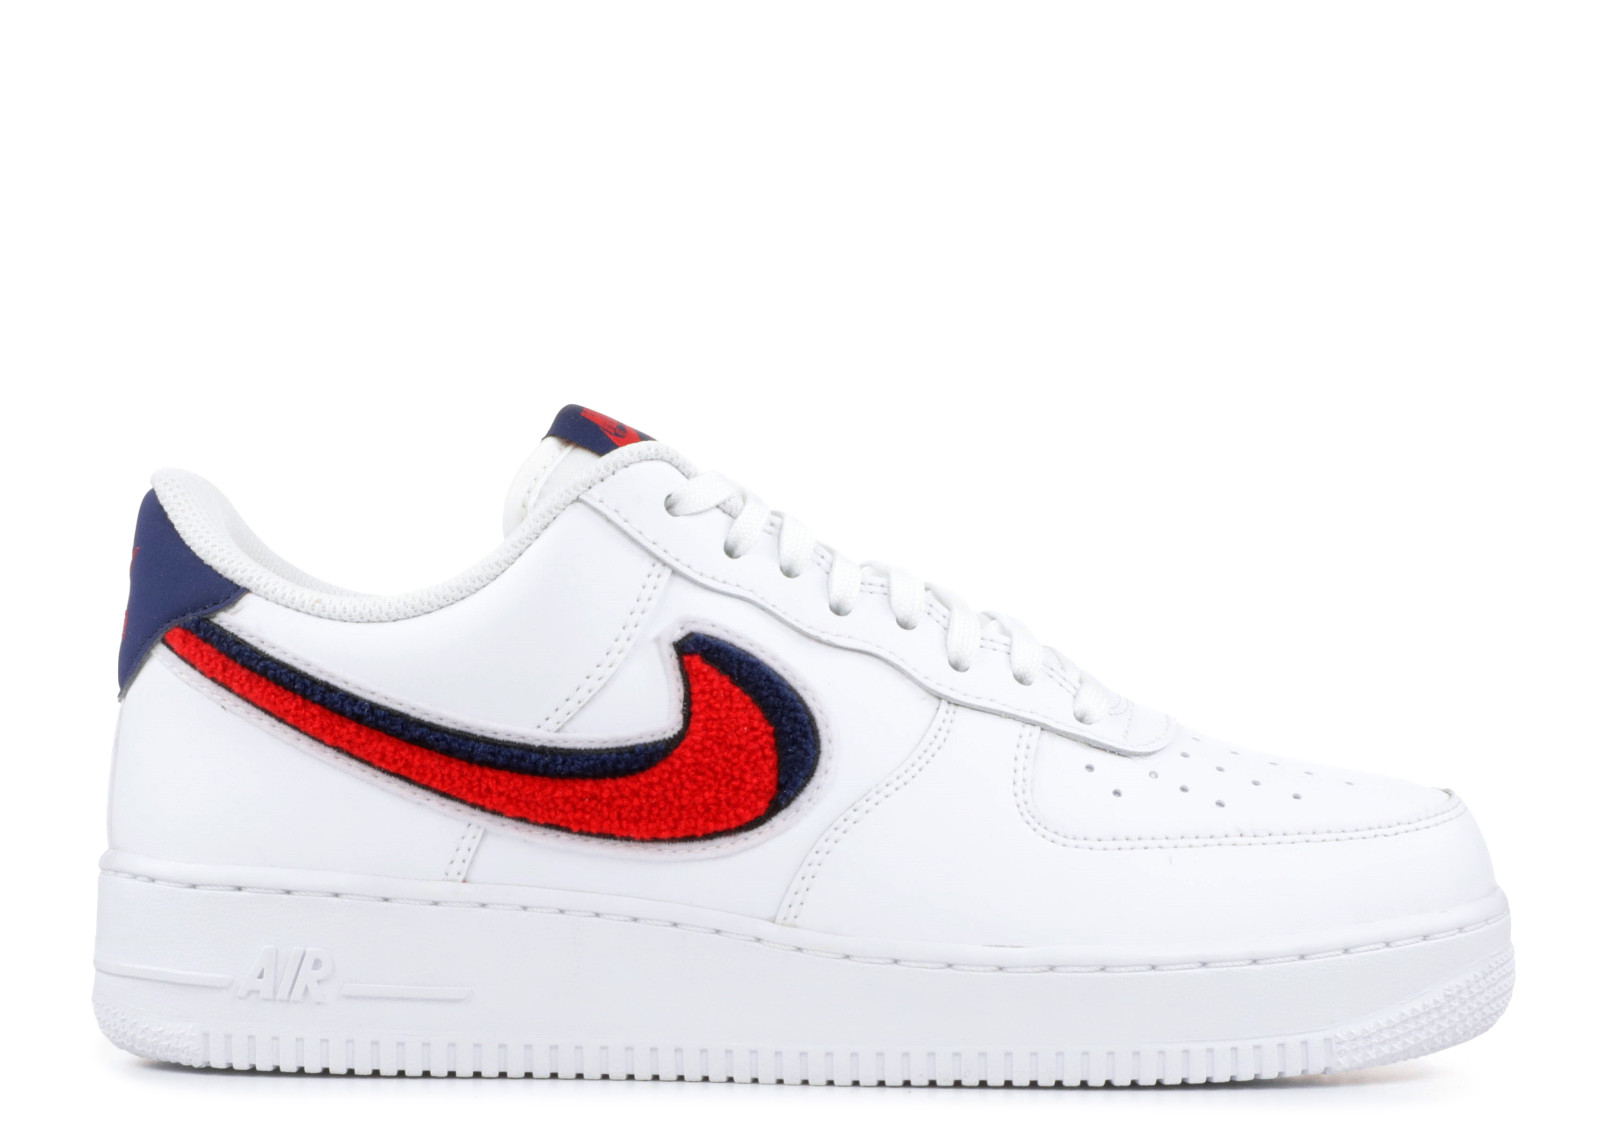 Air Force 1 07 Lv8 'Chenille Swoosh